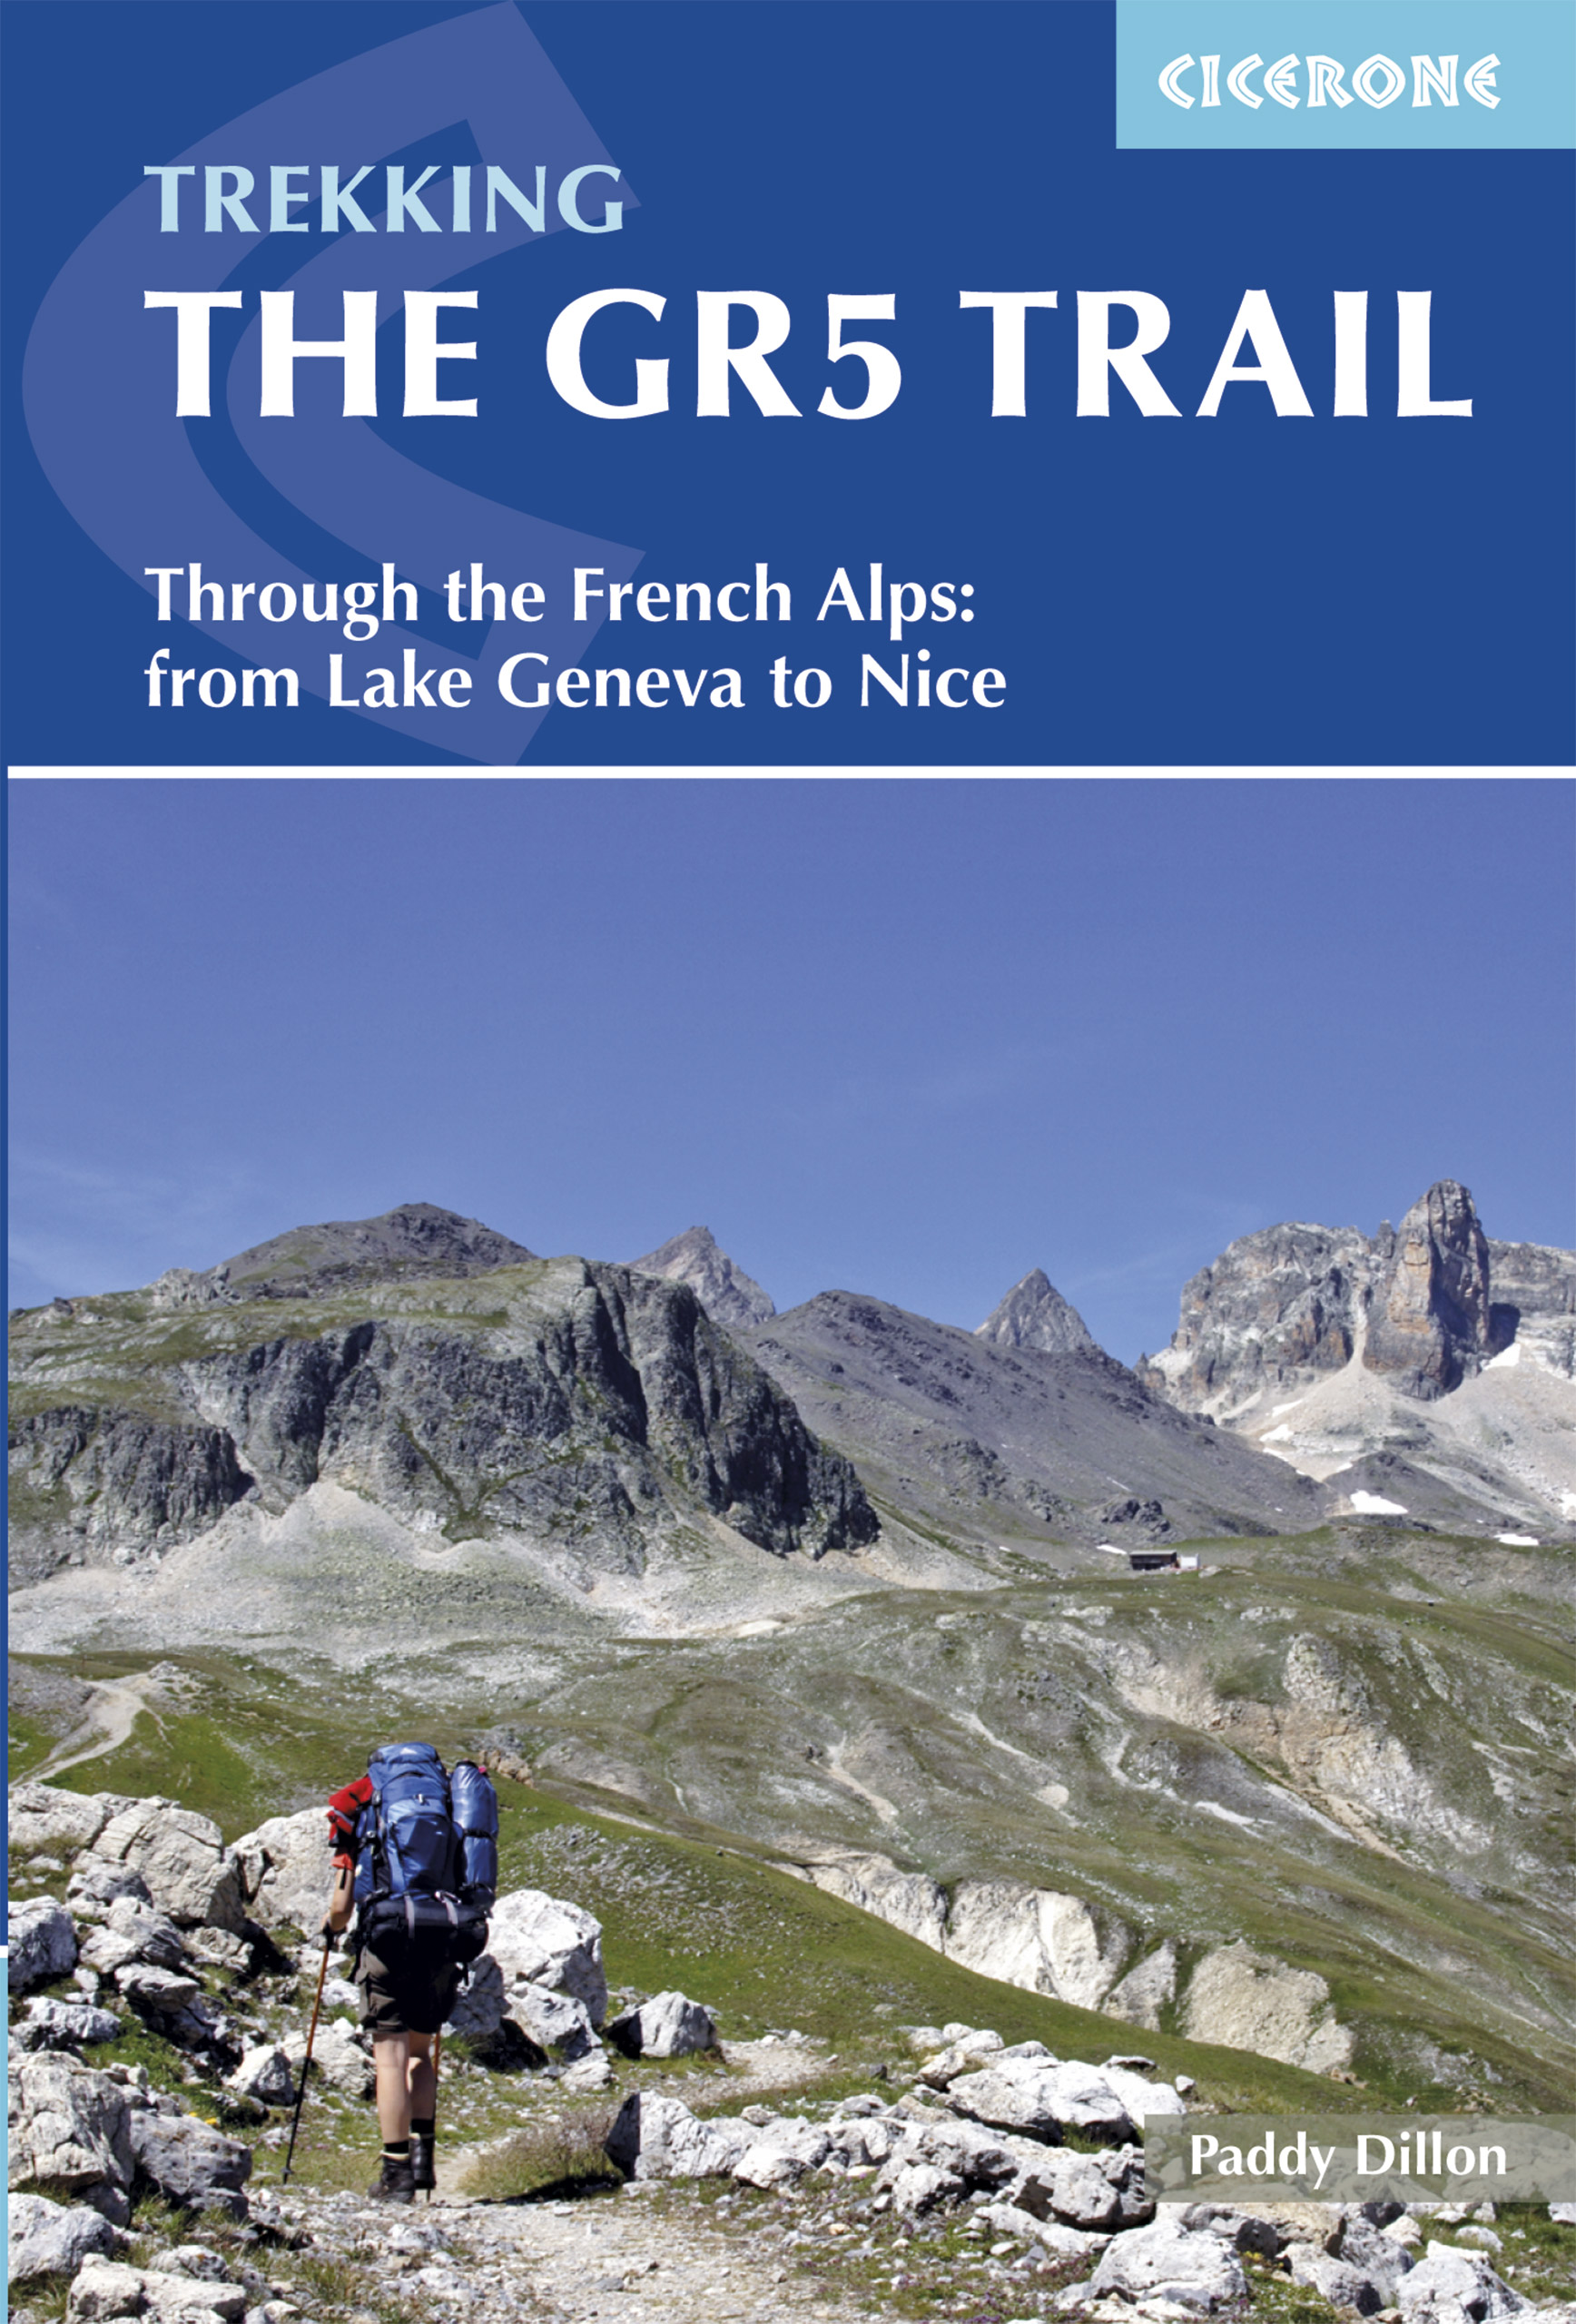 Trekking The GR5 Trail